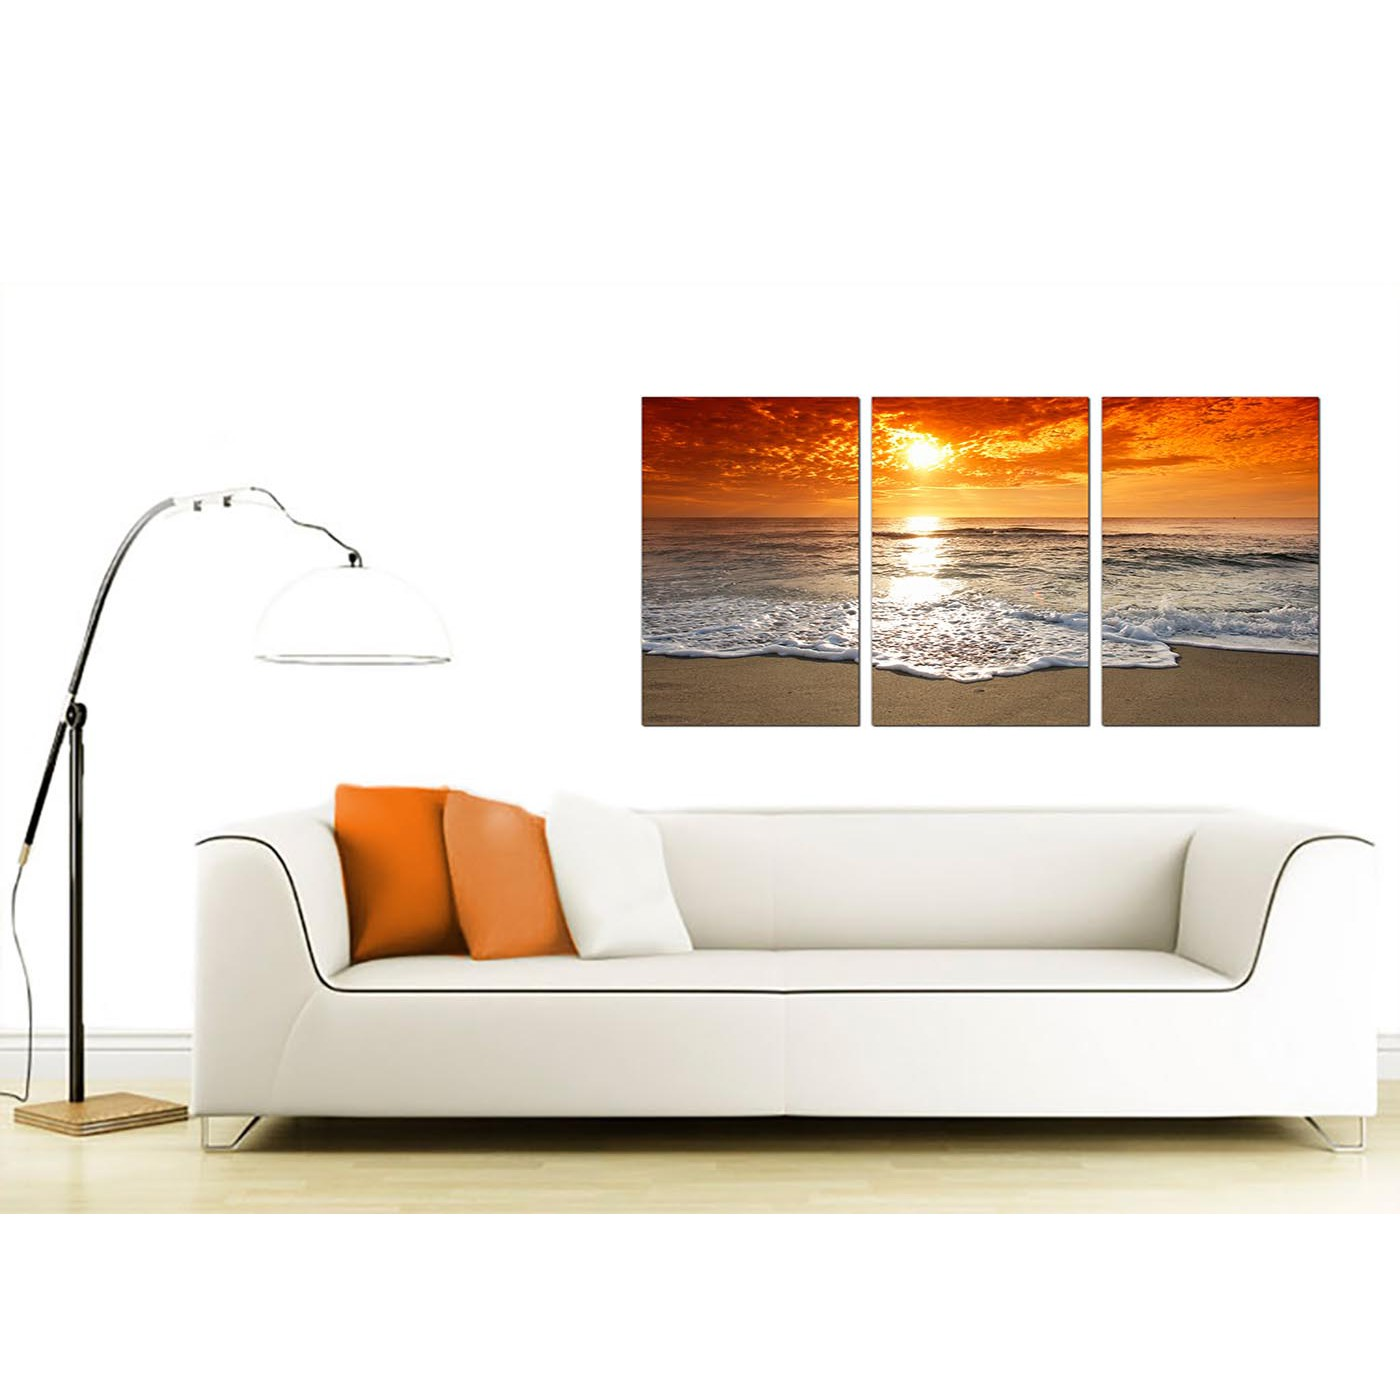 Cheap Beach Sunset Canvas Prints Uk Set Of 3 For Your